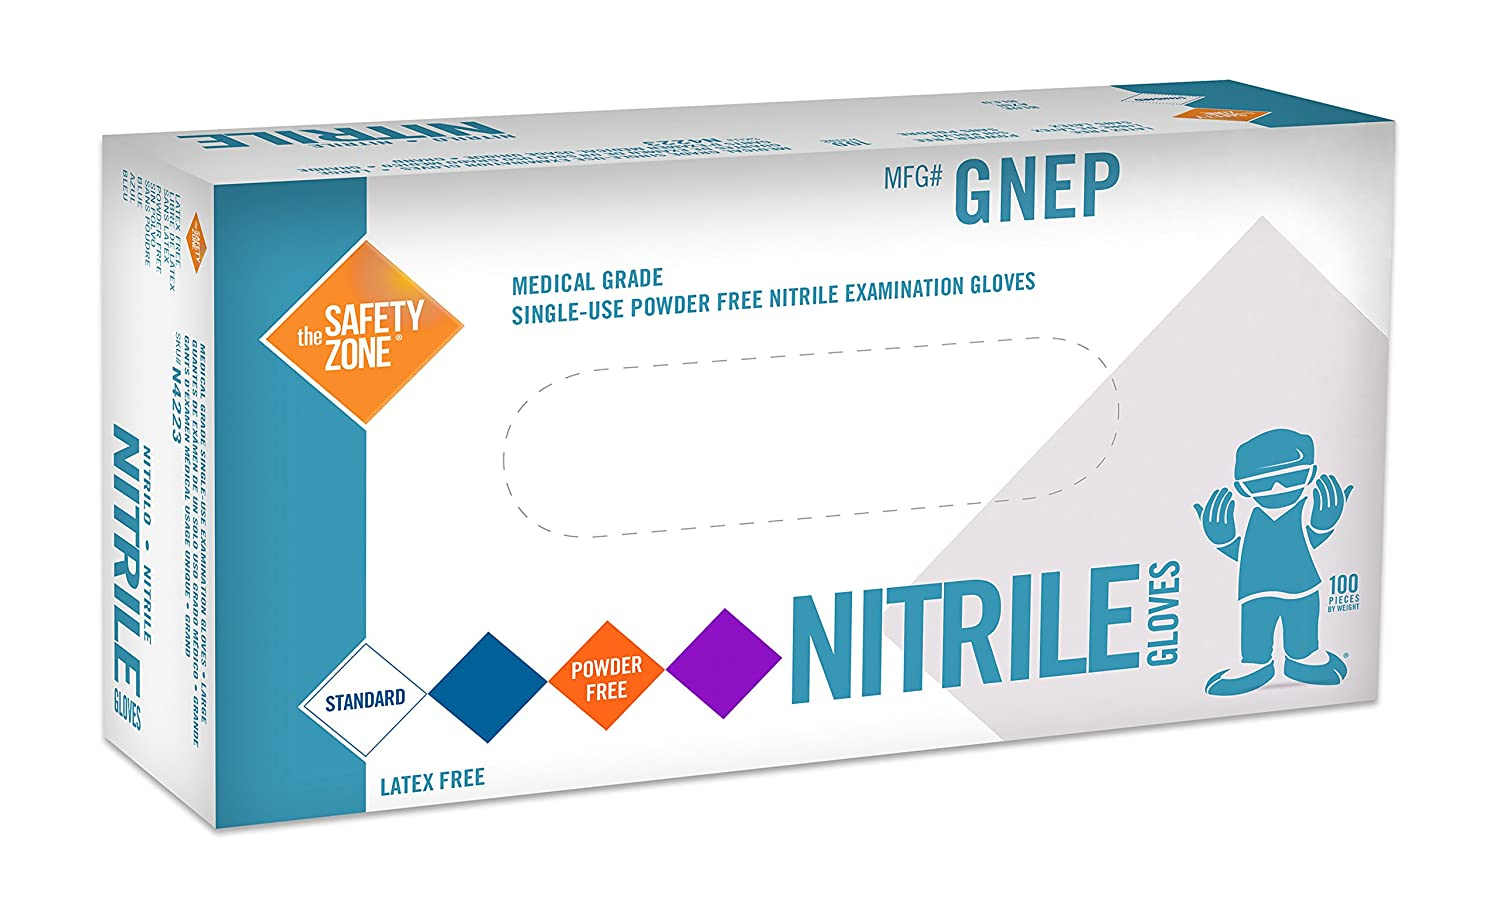 1P Nitrile Exam Gloves The Safety Zone GNEP